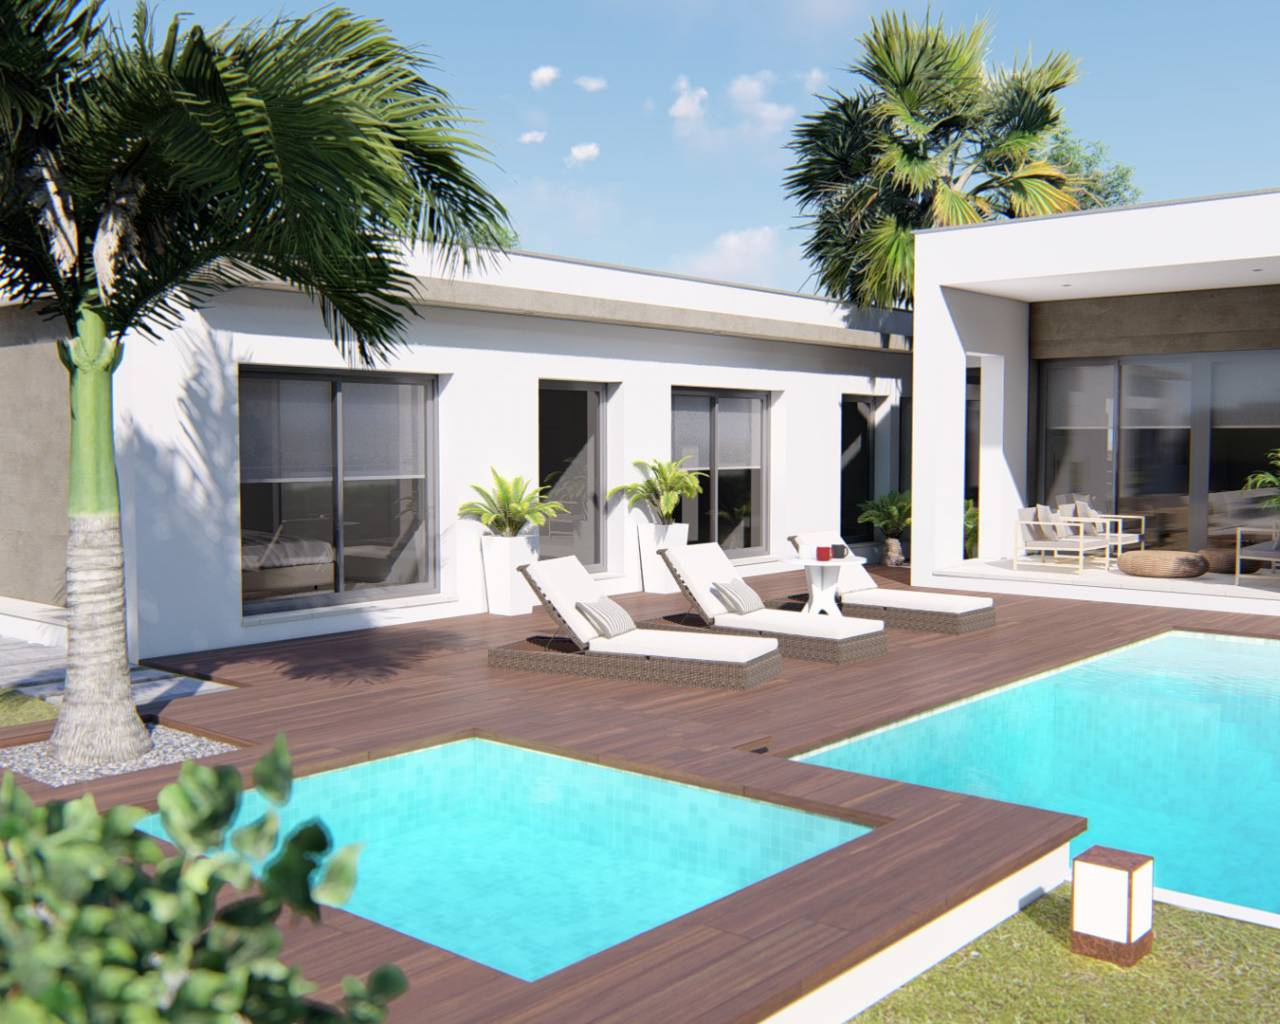 Detached Villa - New Build - Formentera del Segura - Formentera Del Segura